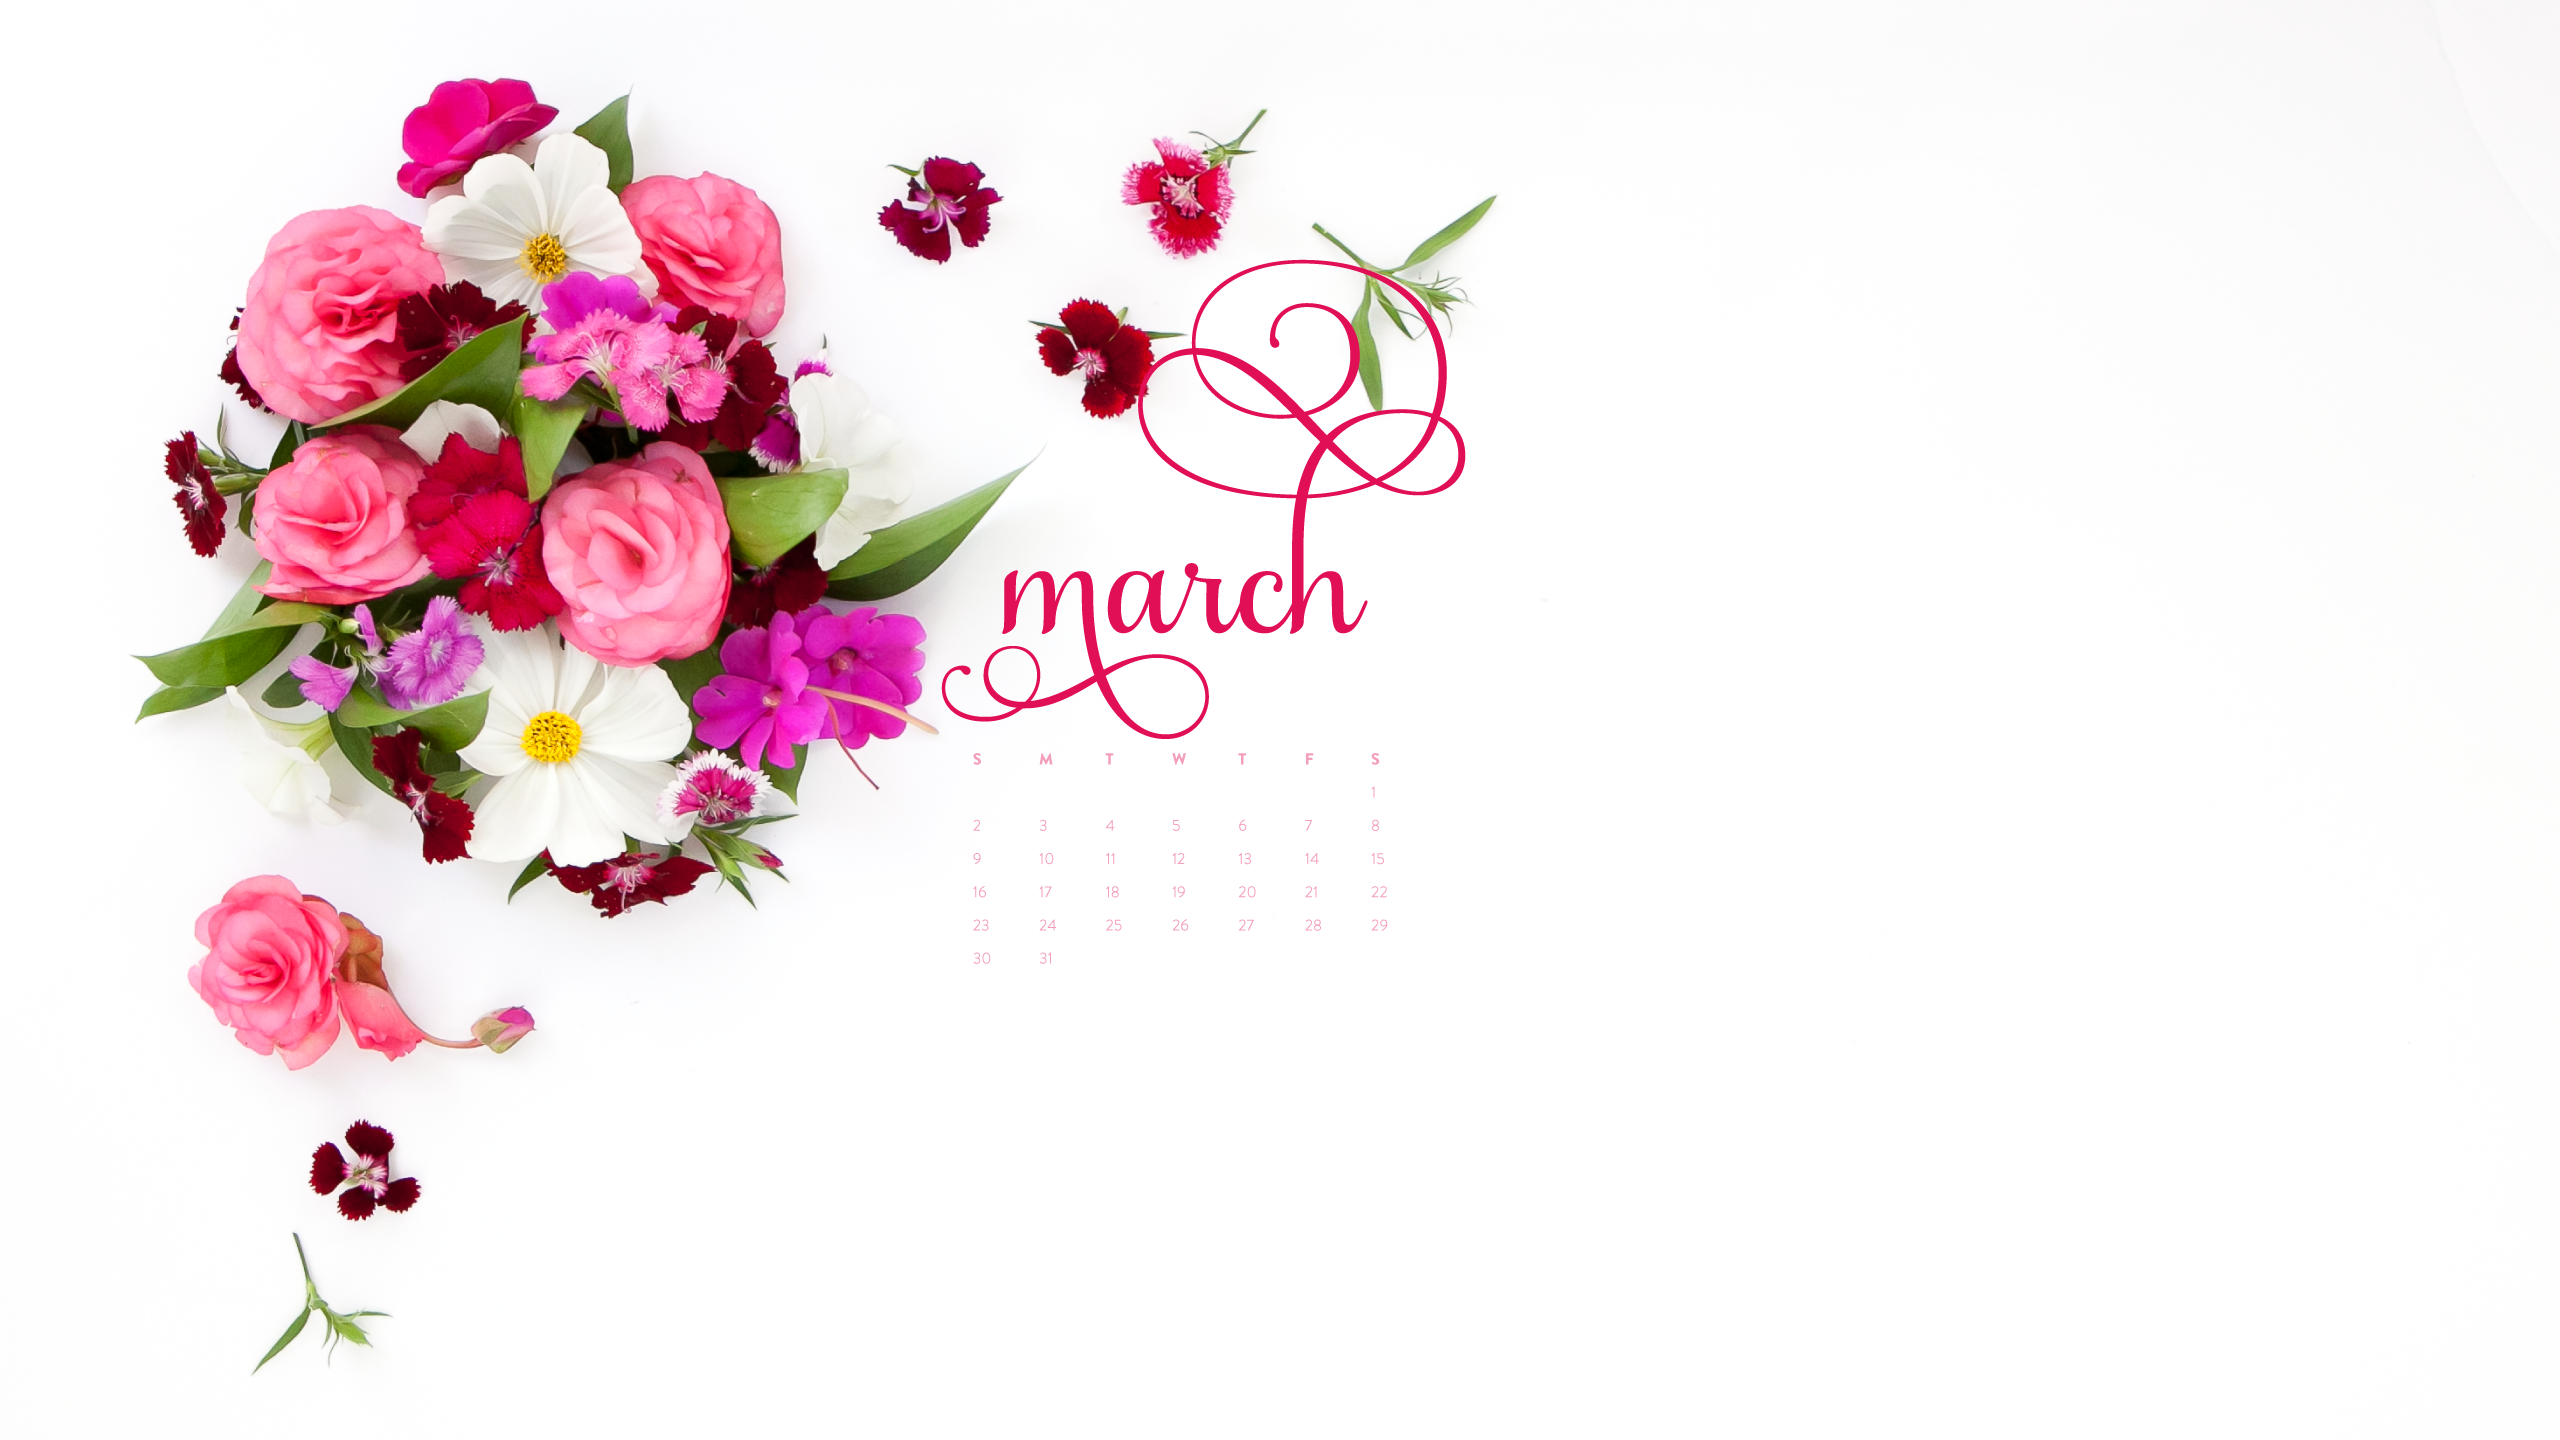 Desktop Calendar: March 2014 | AshleeProffitt